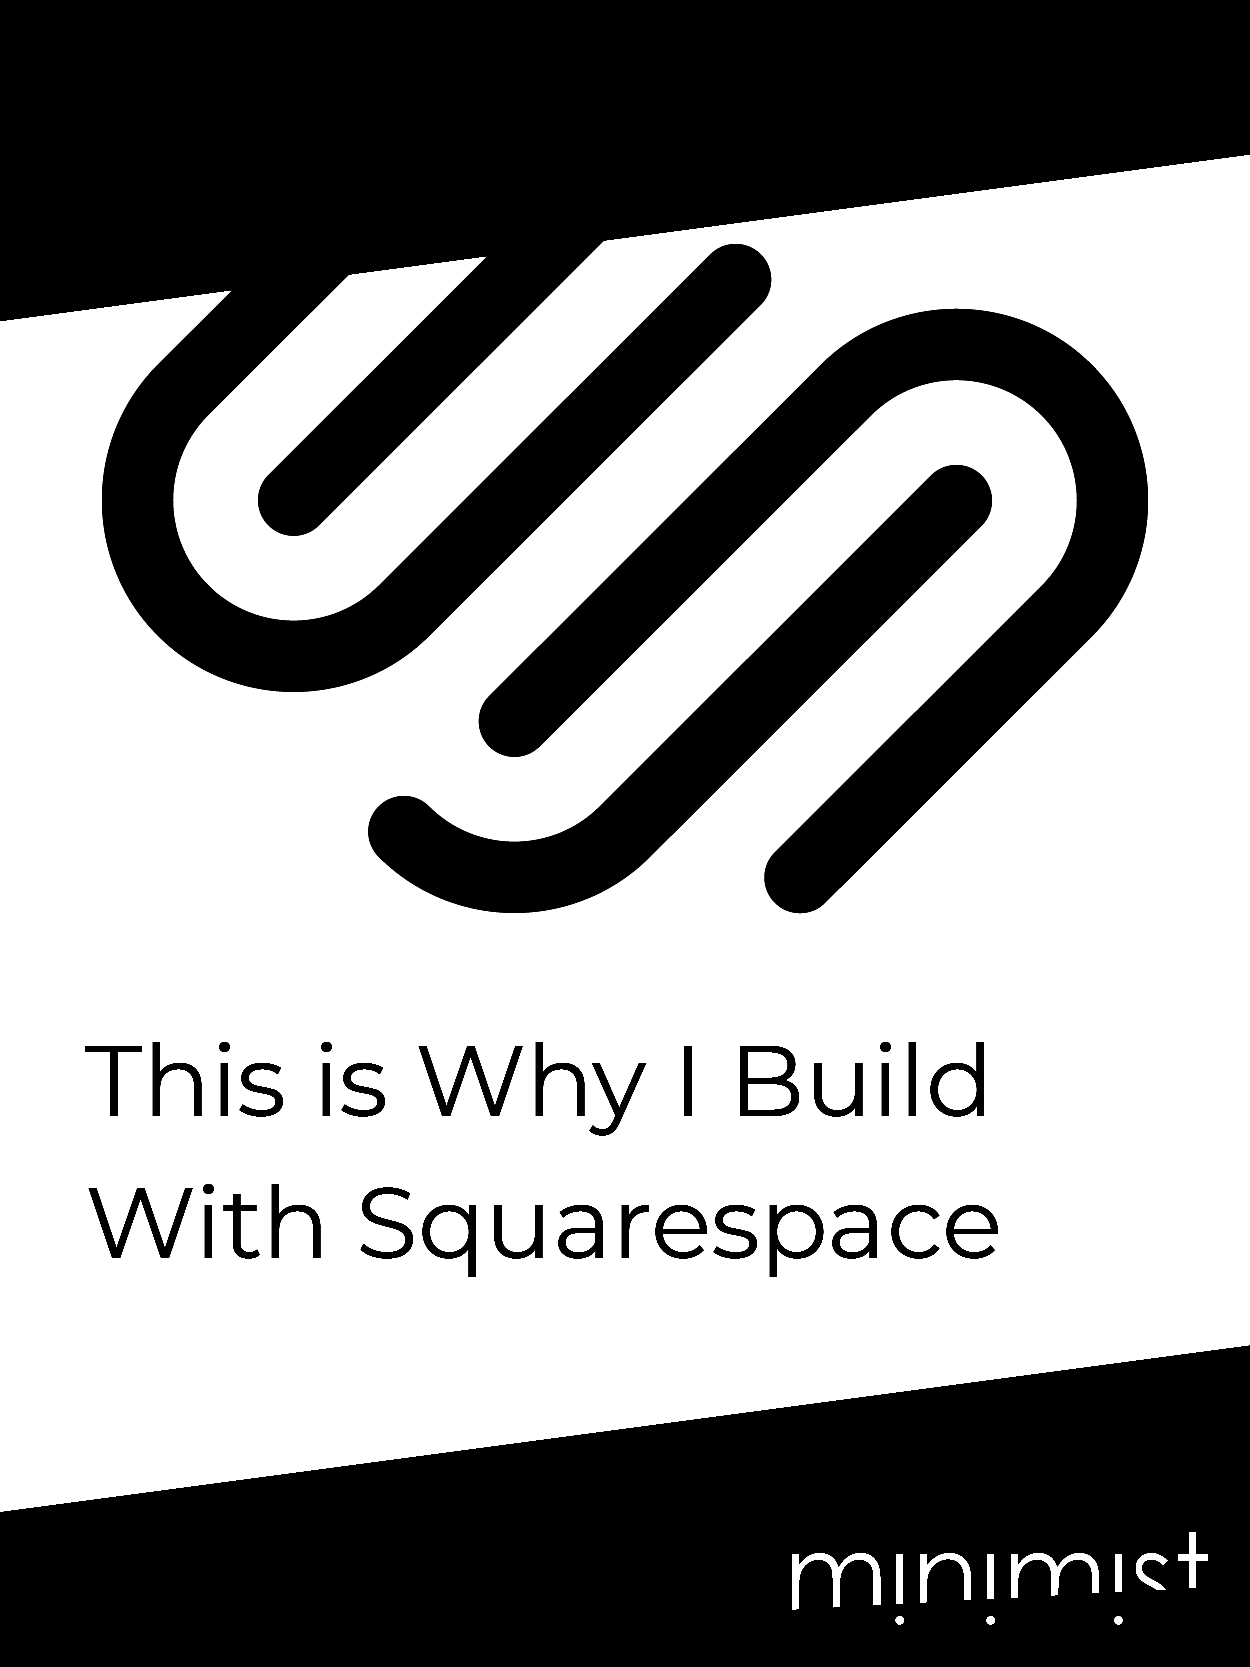 This is why I build with Squarespace